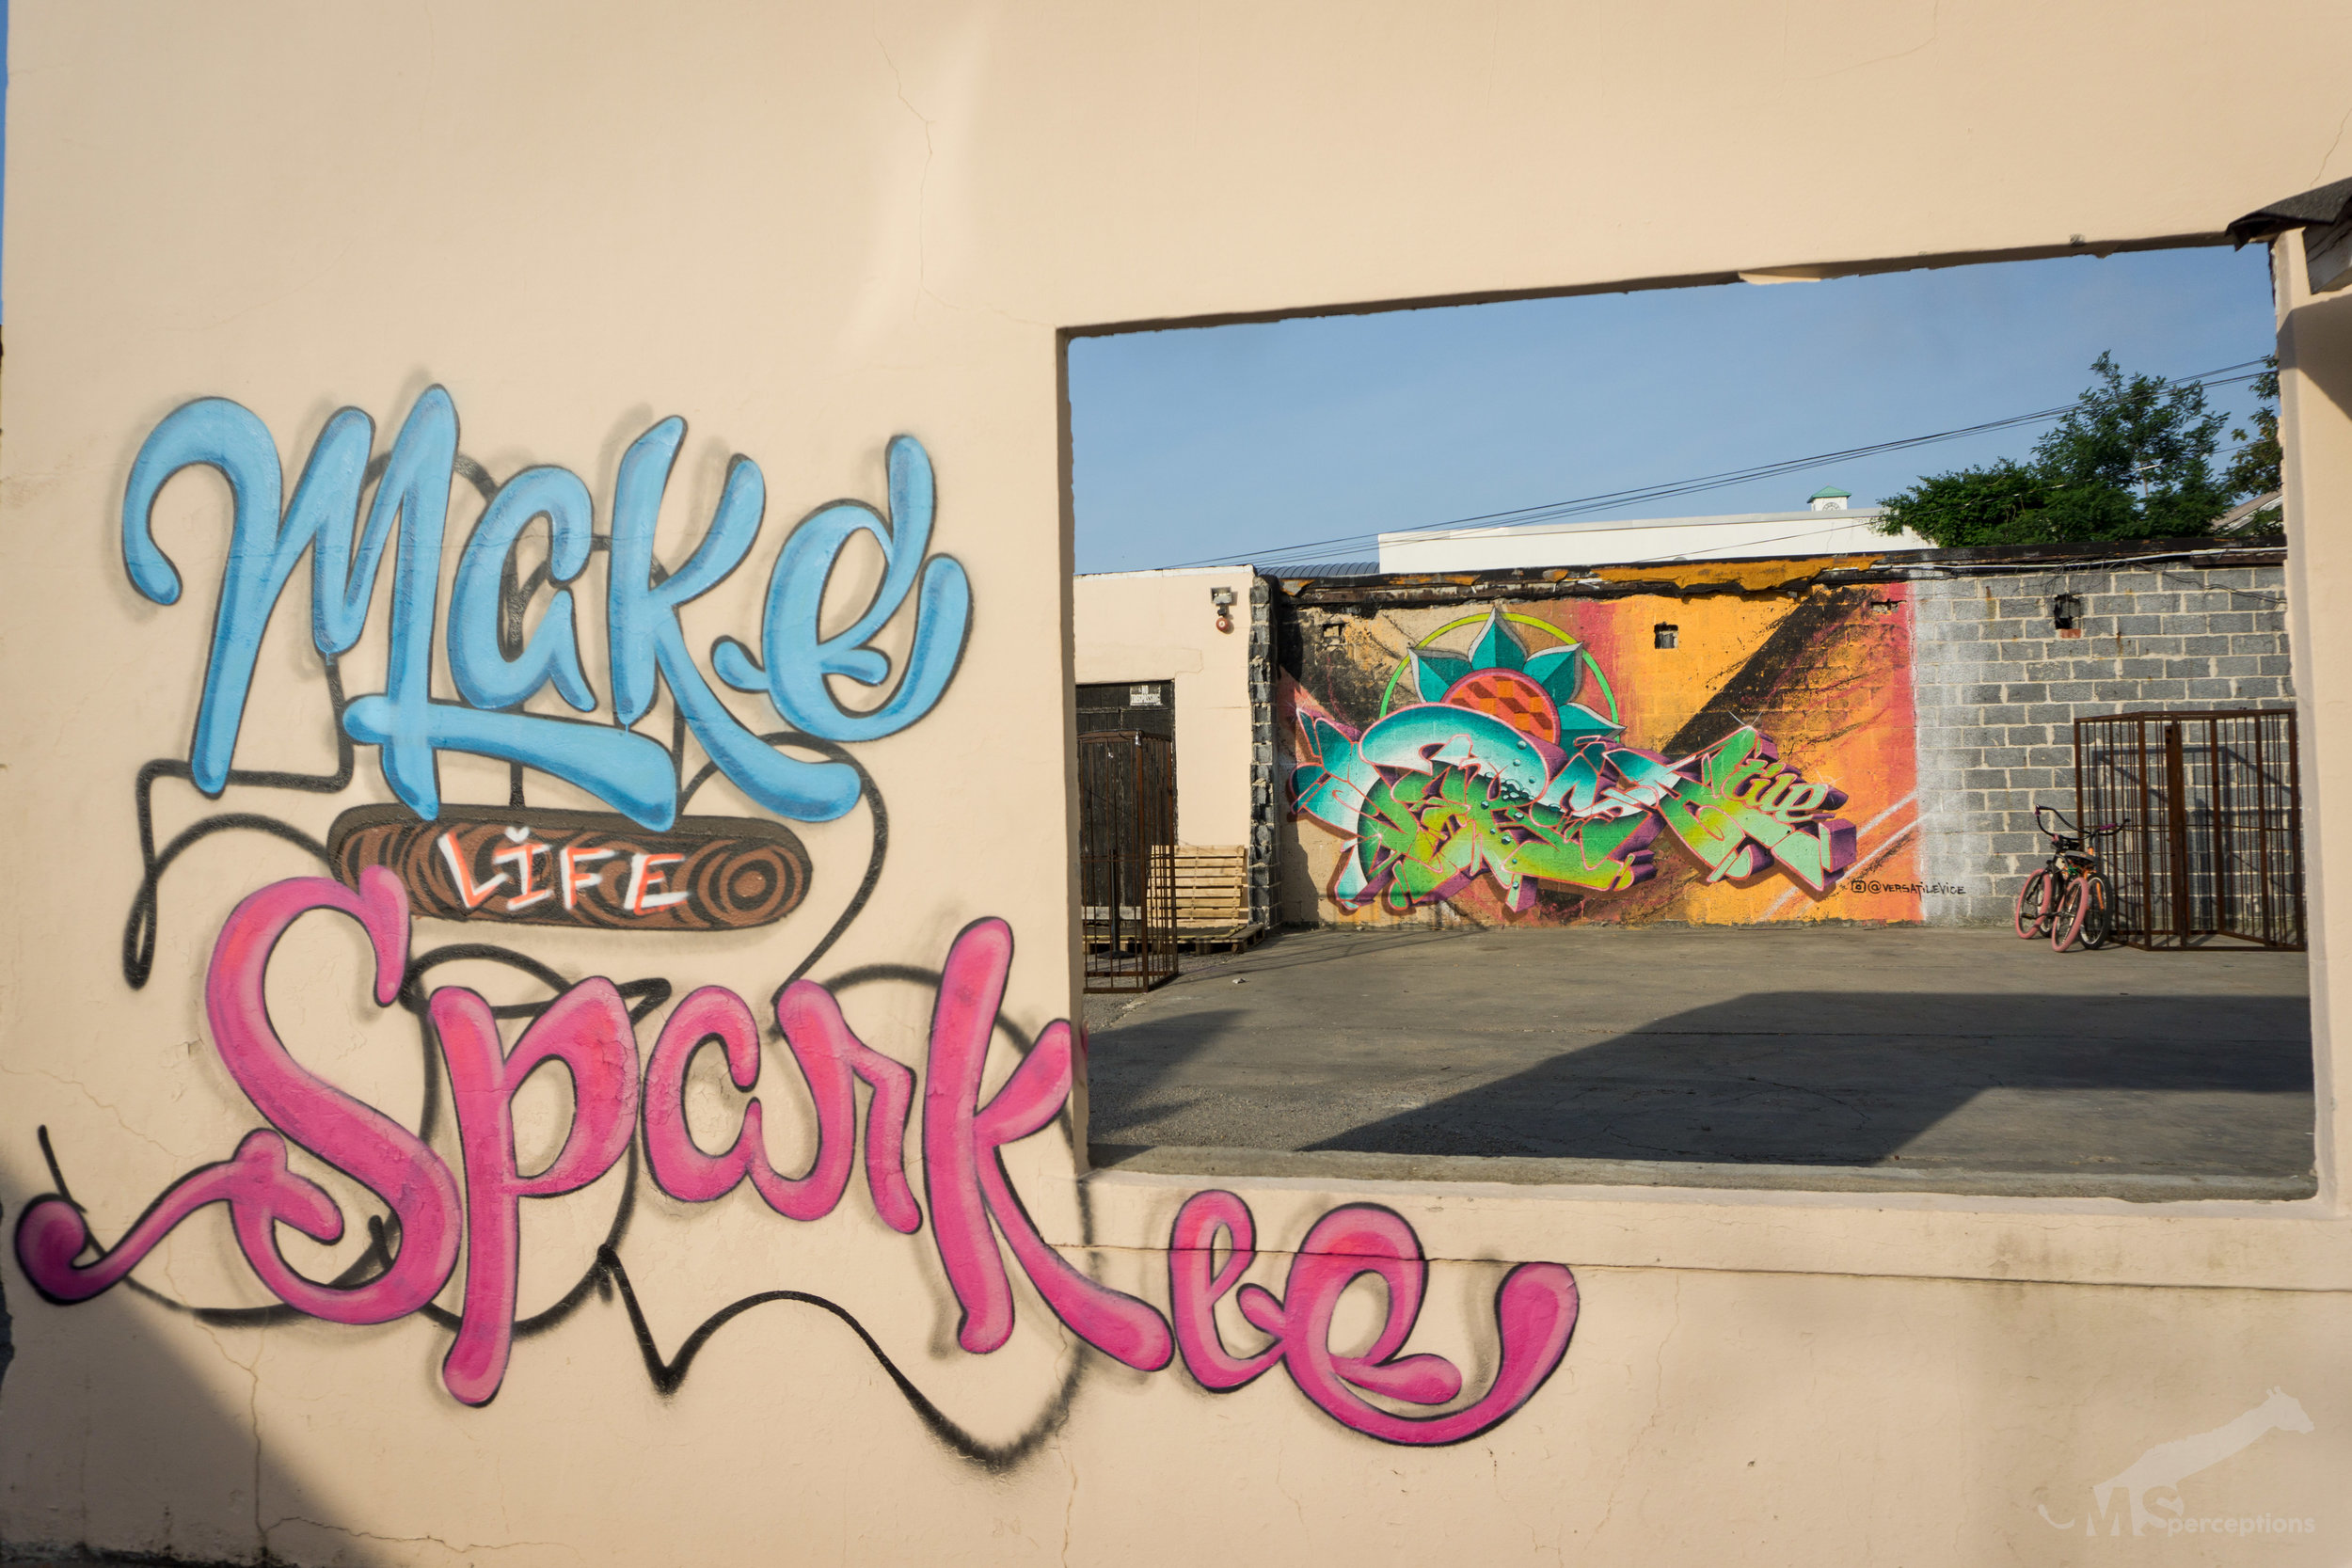 Vice used the unique outdoor layout to his advantage in creating this vibrant mural with a positive message.